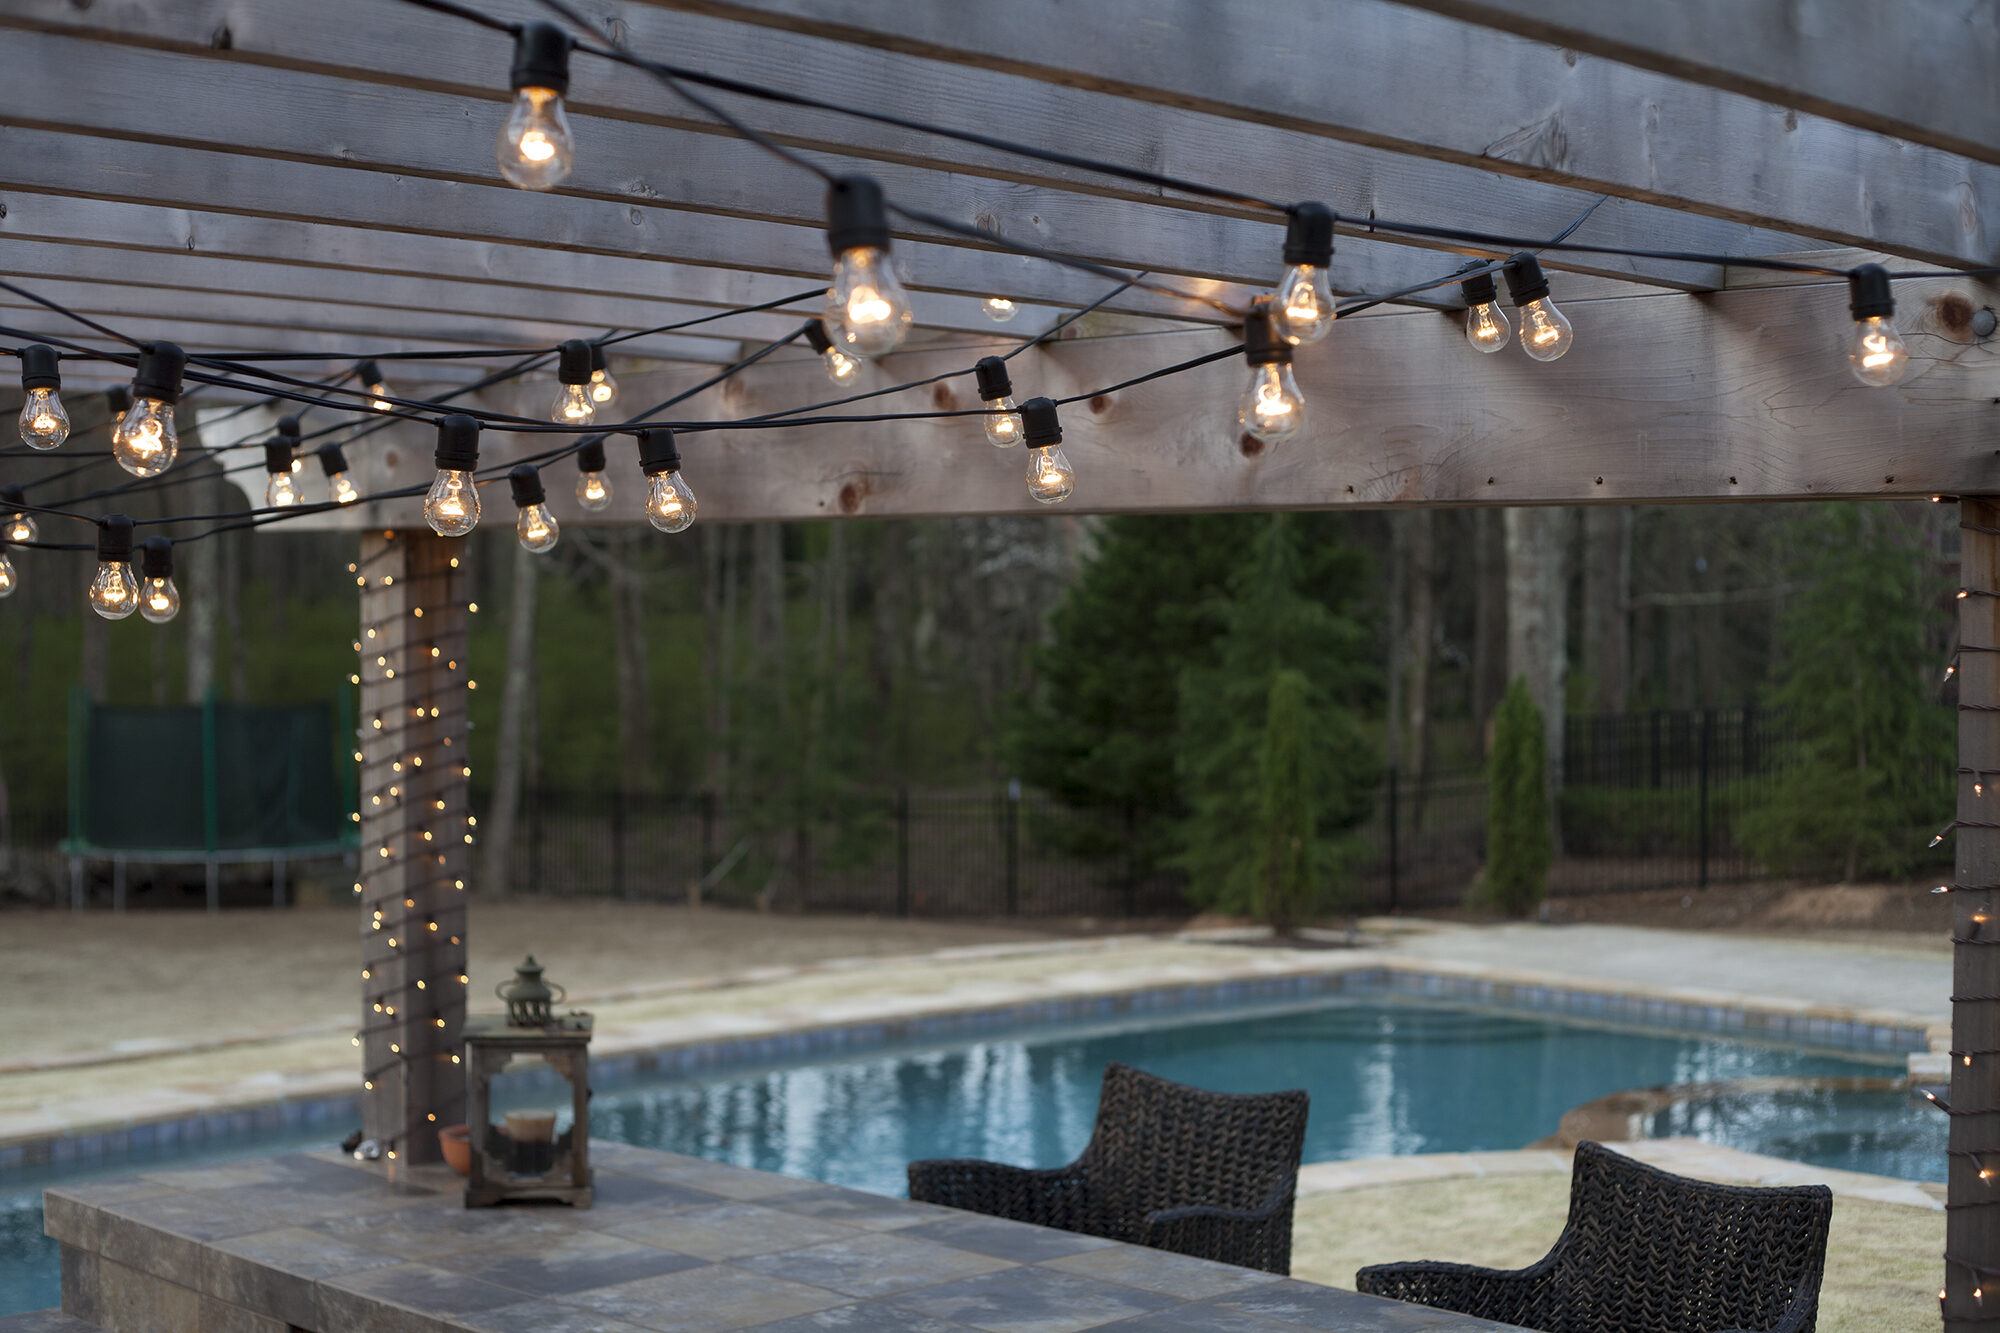 Hang Patio Lights On The Deck And By The Pool To Create An Inviting And  Inspirational